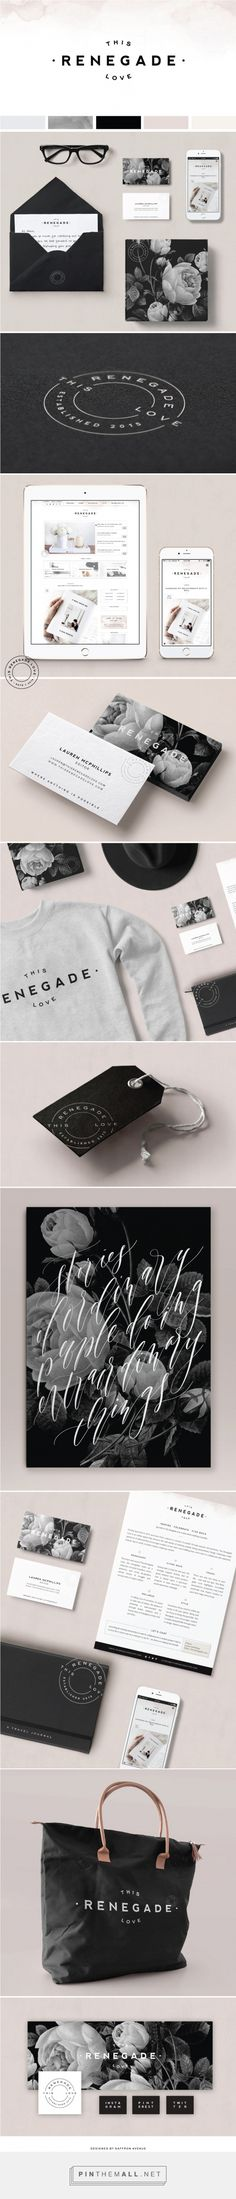 This Renegade Love Lifestyle Branding by Saffron Avenue | Fivestar Branding Agency – Design and Branding Agency & Curated Inspiration Gallery